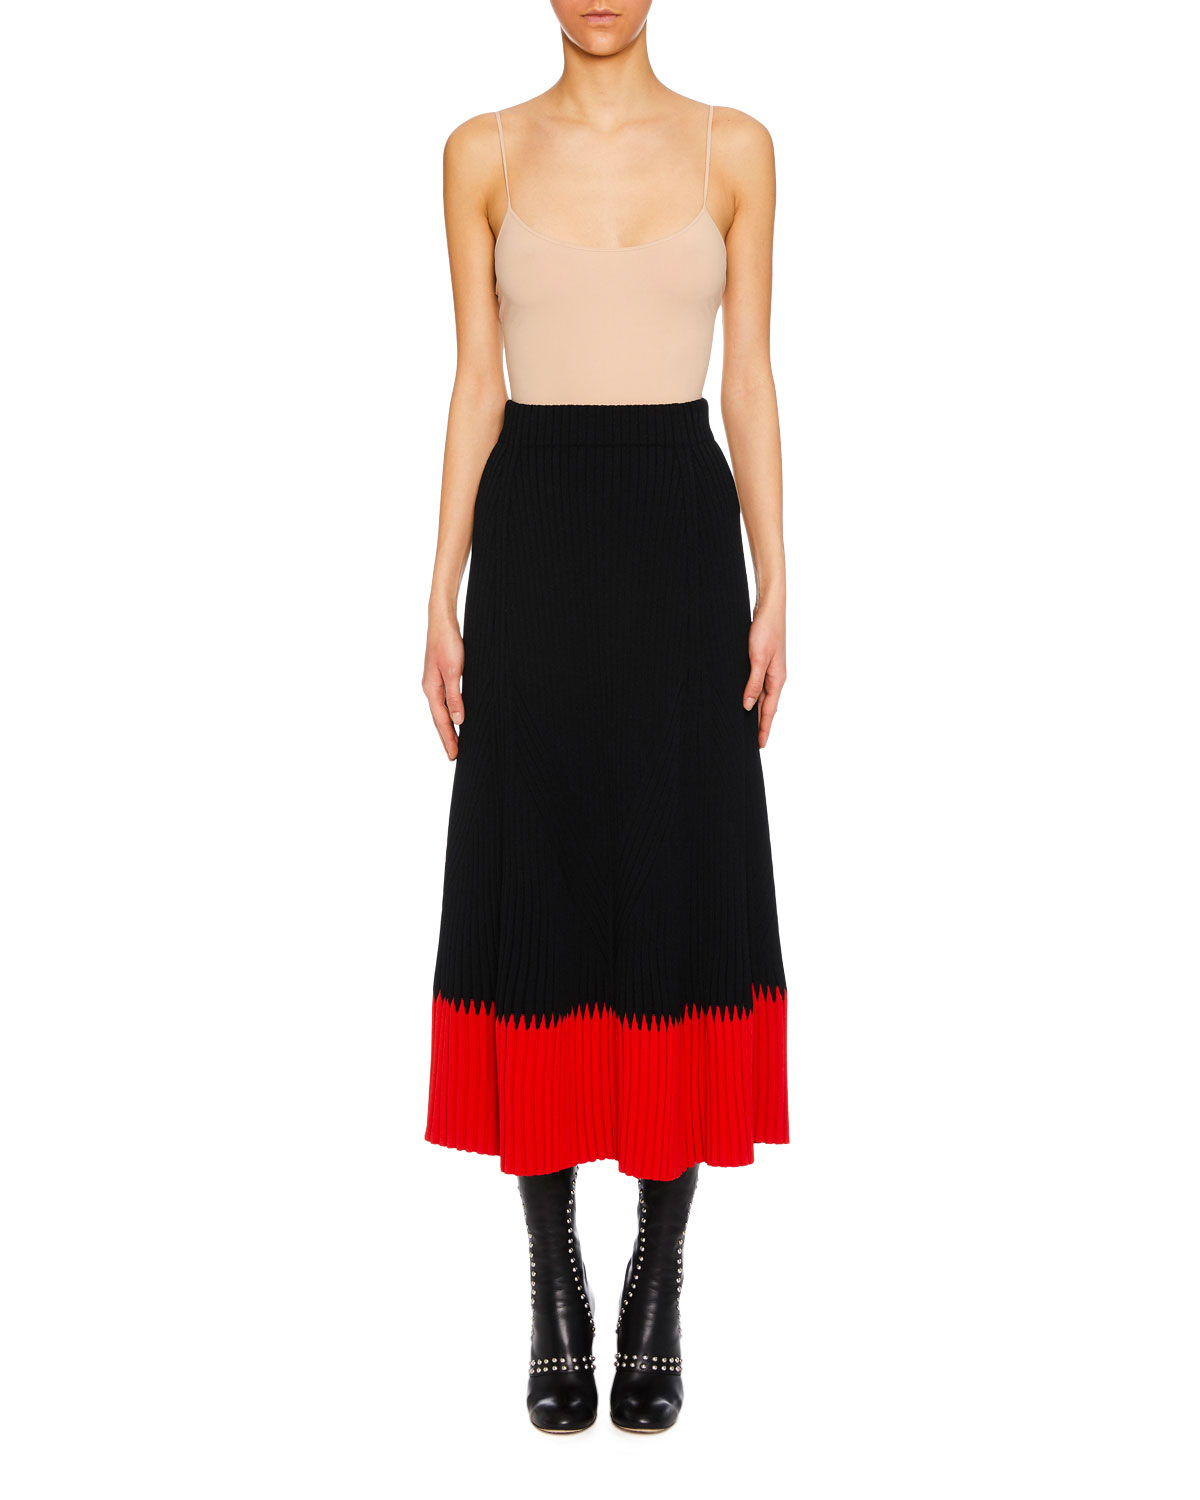 A-Line Long Ribbed Skirt W/ Contrast Tip in Black